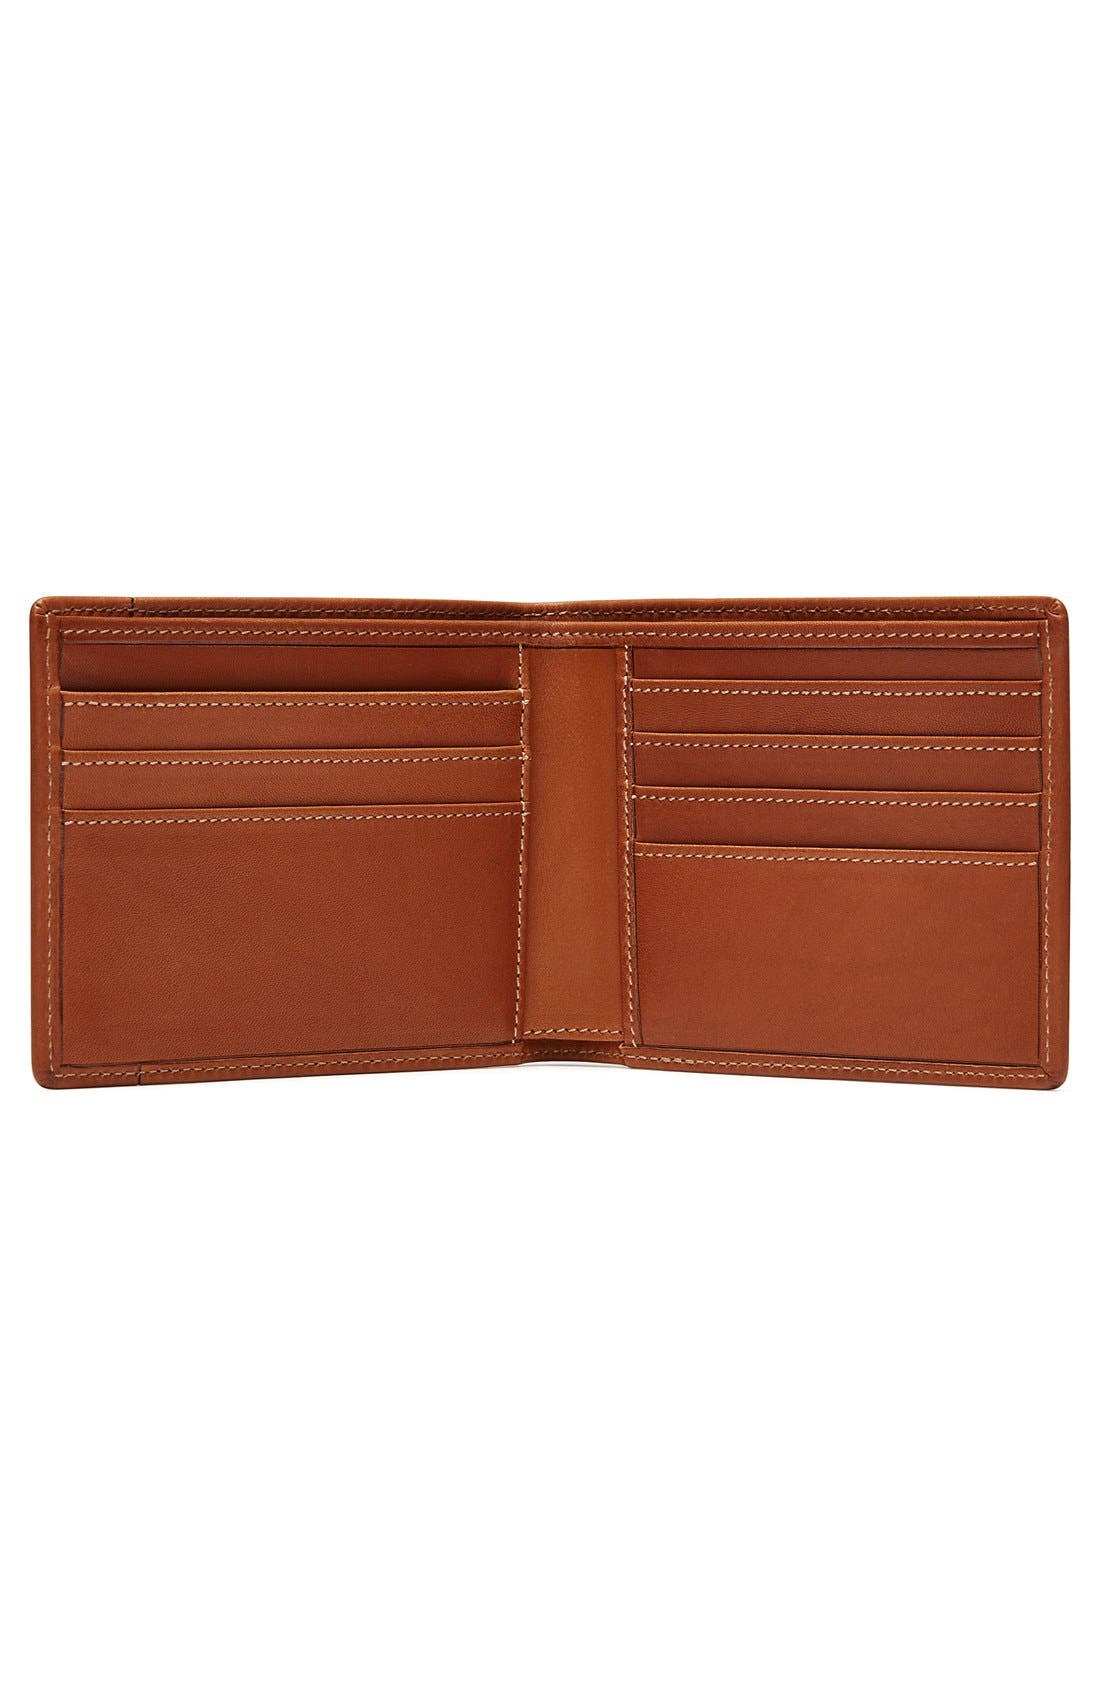 Alternate Image 2  - Ghurka Leather Wallet with ID Case